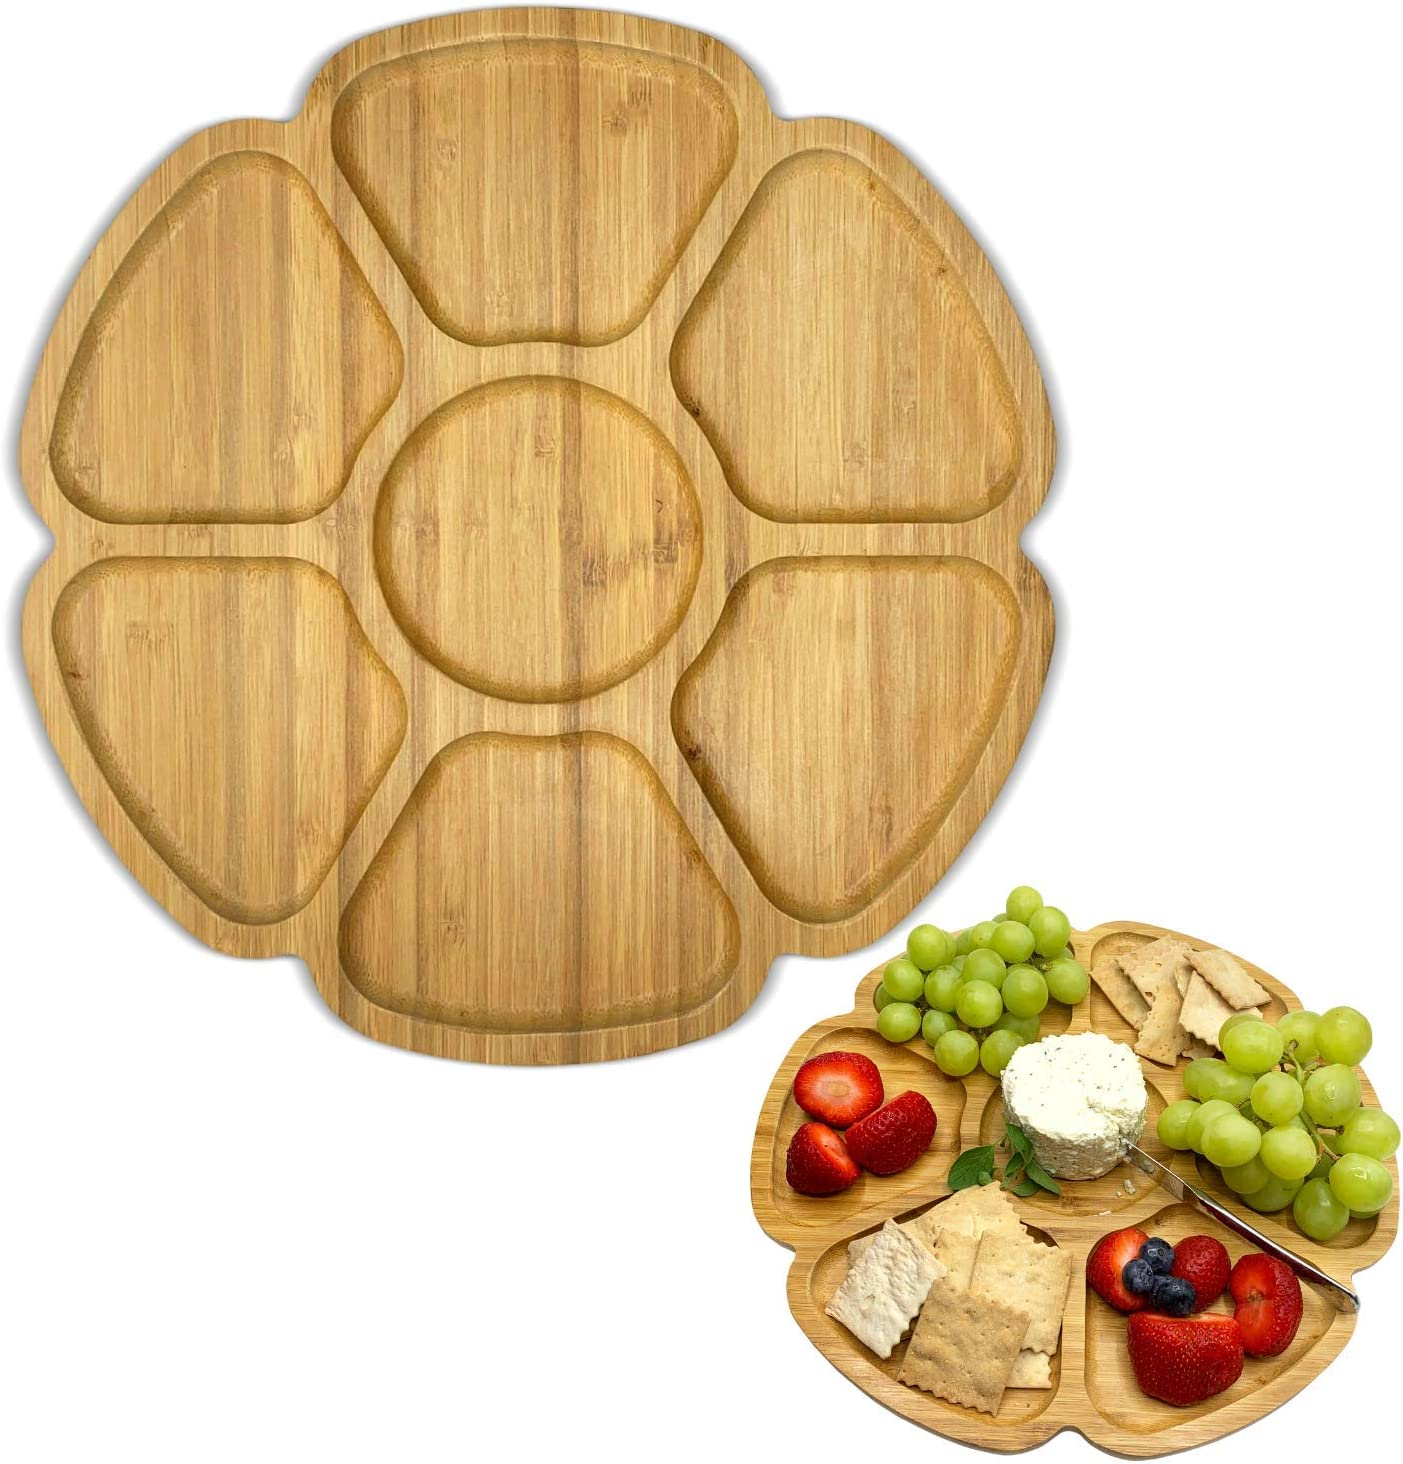 12.6 Inches Premium Bamboo Kitchen Serving Tray – 100% Handmade Crafted Platter – for Parties, Dinners, Holidays – New Sleek Design – Eco-Friendly All-Natural Vegan Wooden Platter - Food Tray